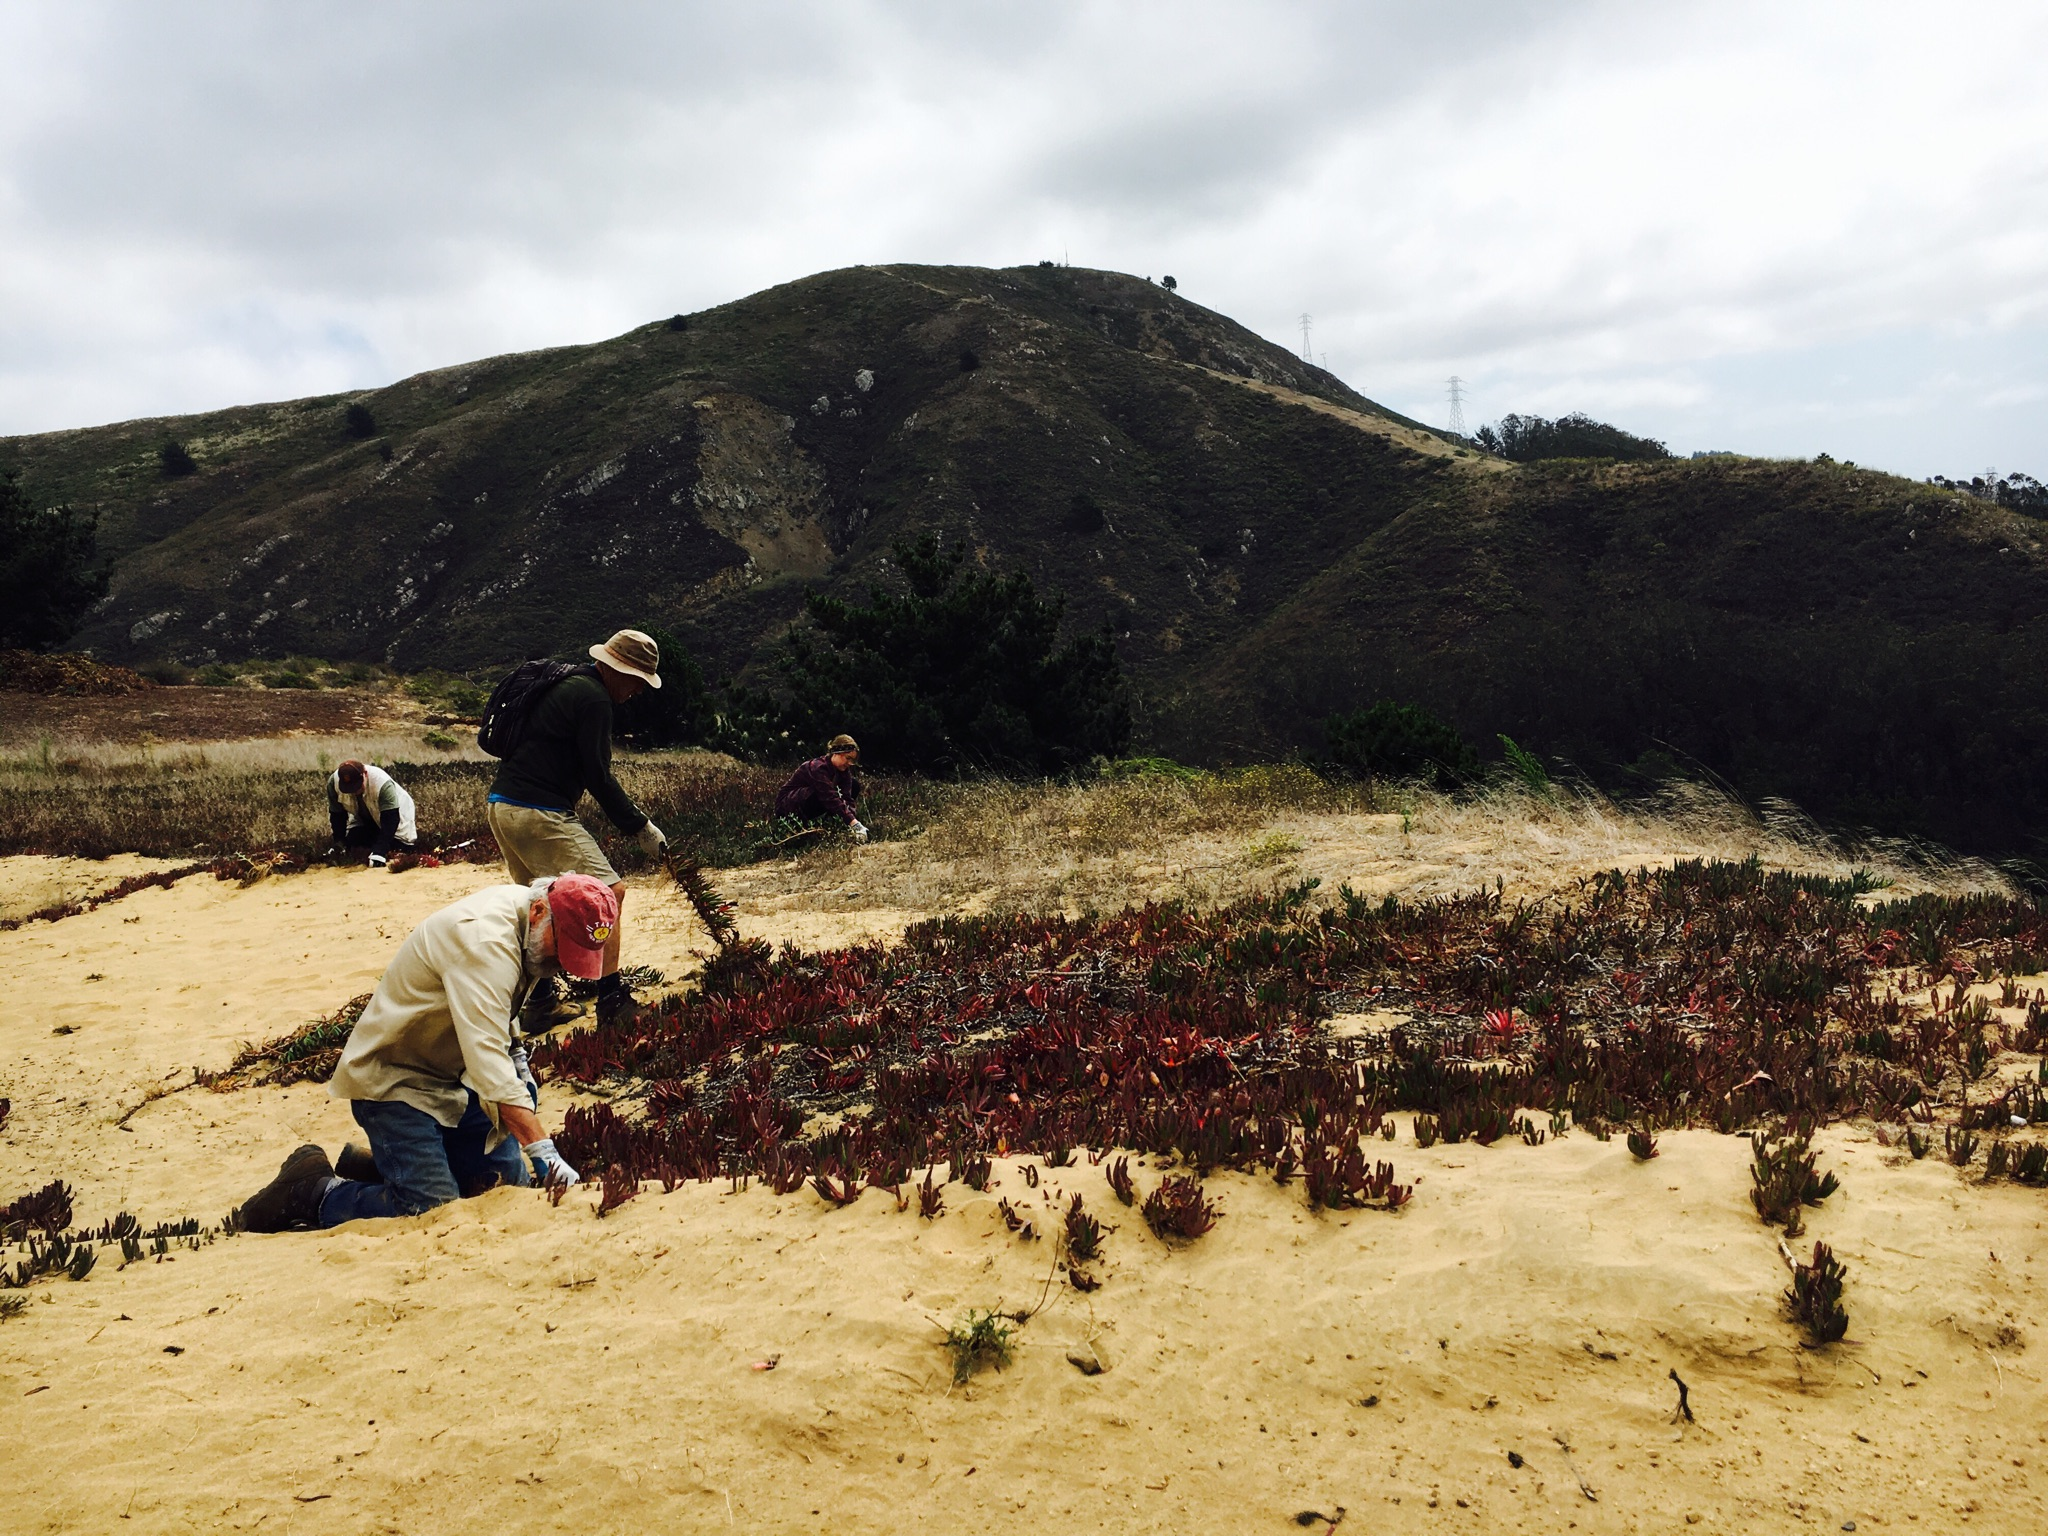 Removal of invasive ice plant uncovers suitable sandy habitat for the native dune flora.